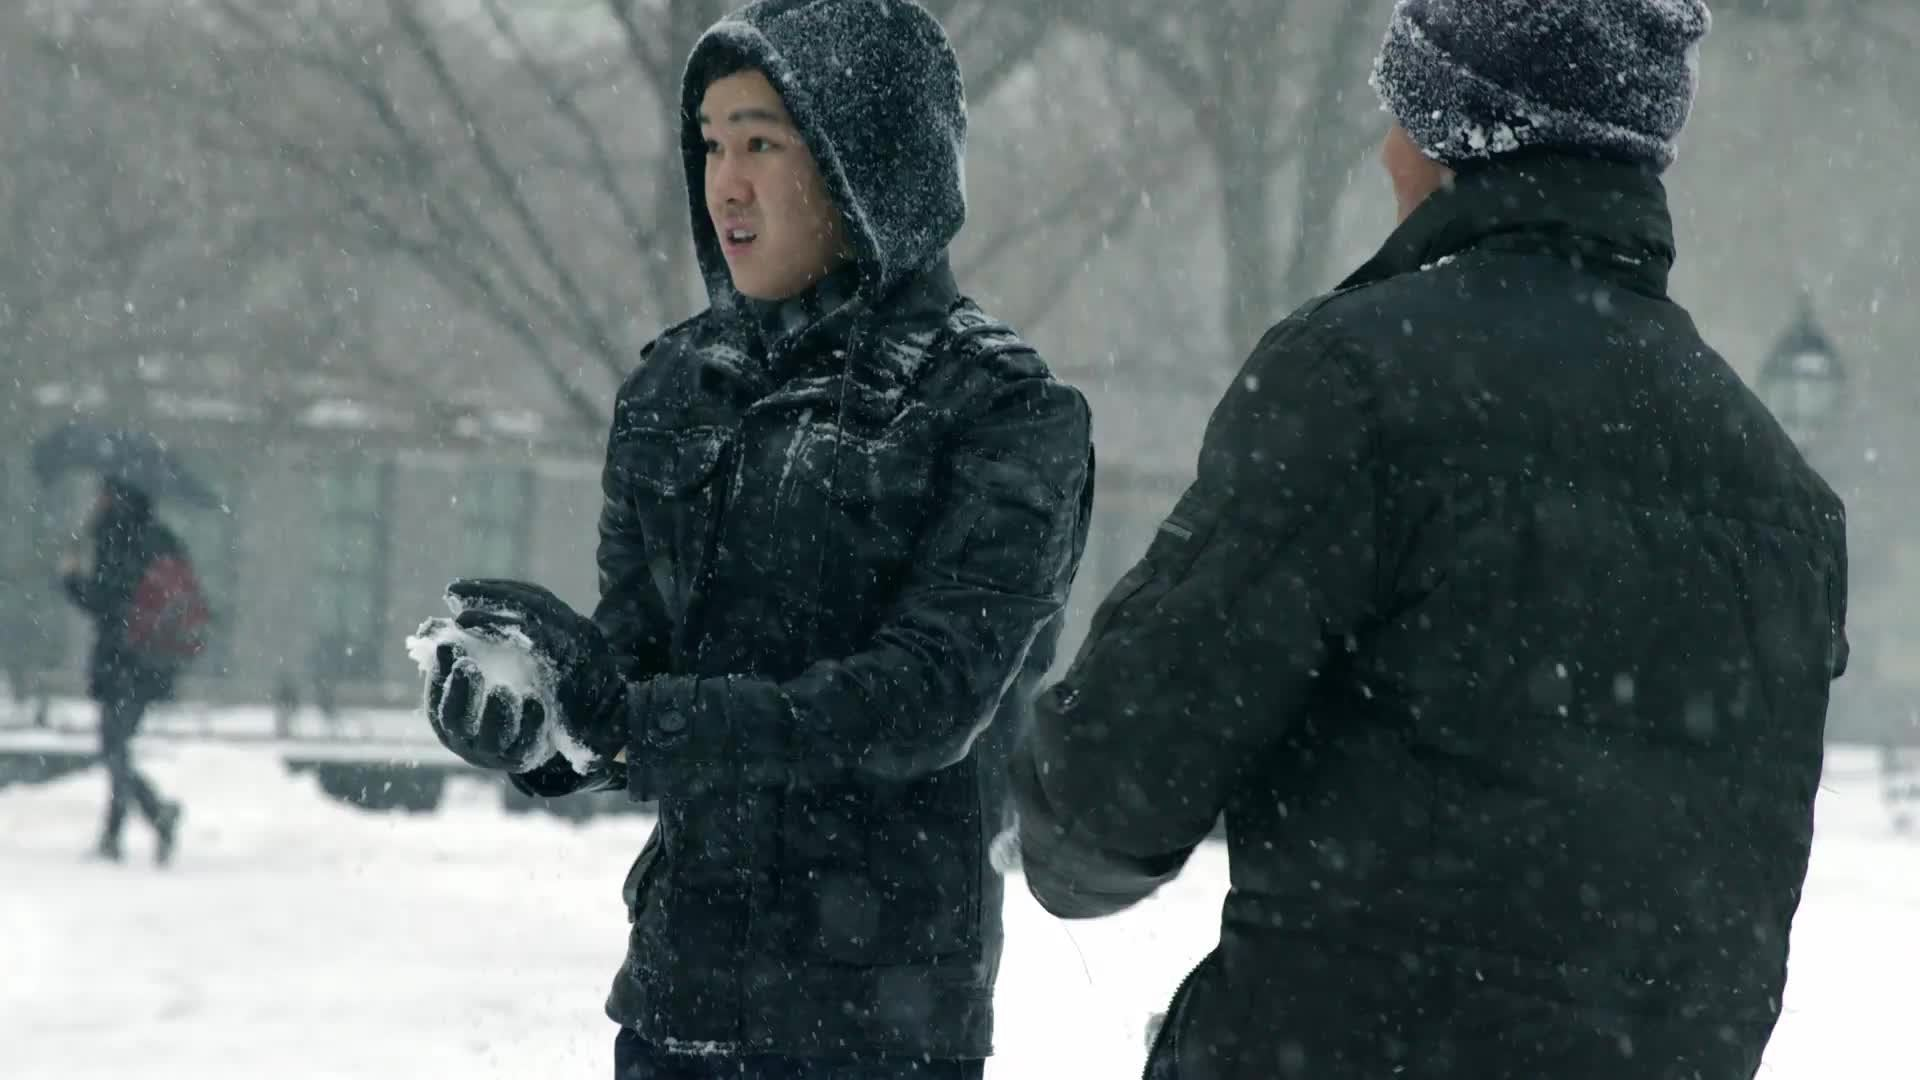 guys throwing snowballs in winter blizzard storm, snowing in Washington Square Park - Asian and Indian man throw snow ball in snowball fight slow motion 4K